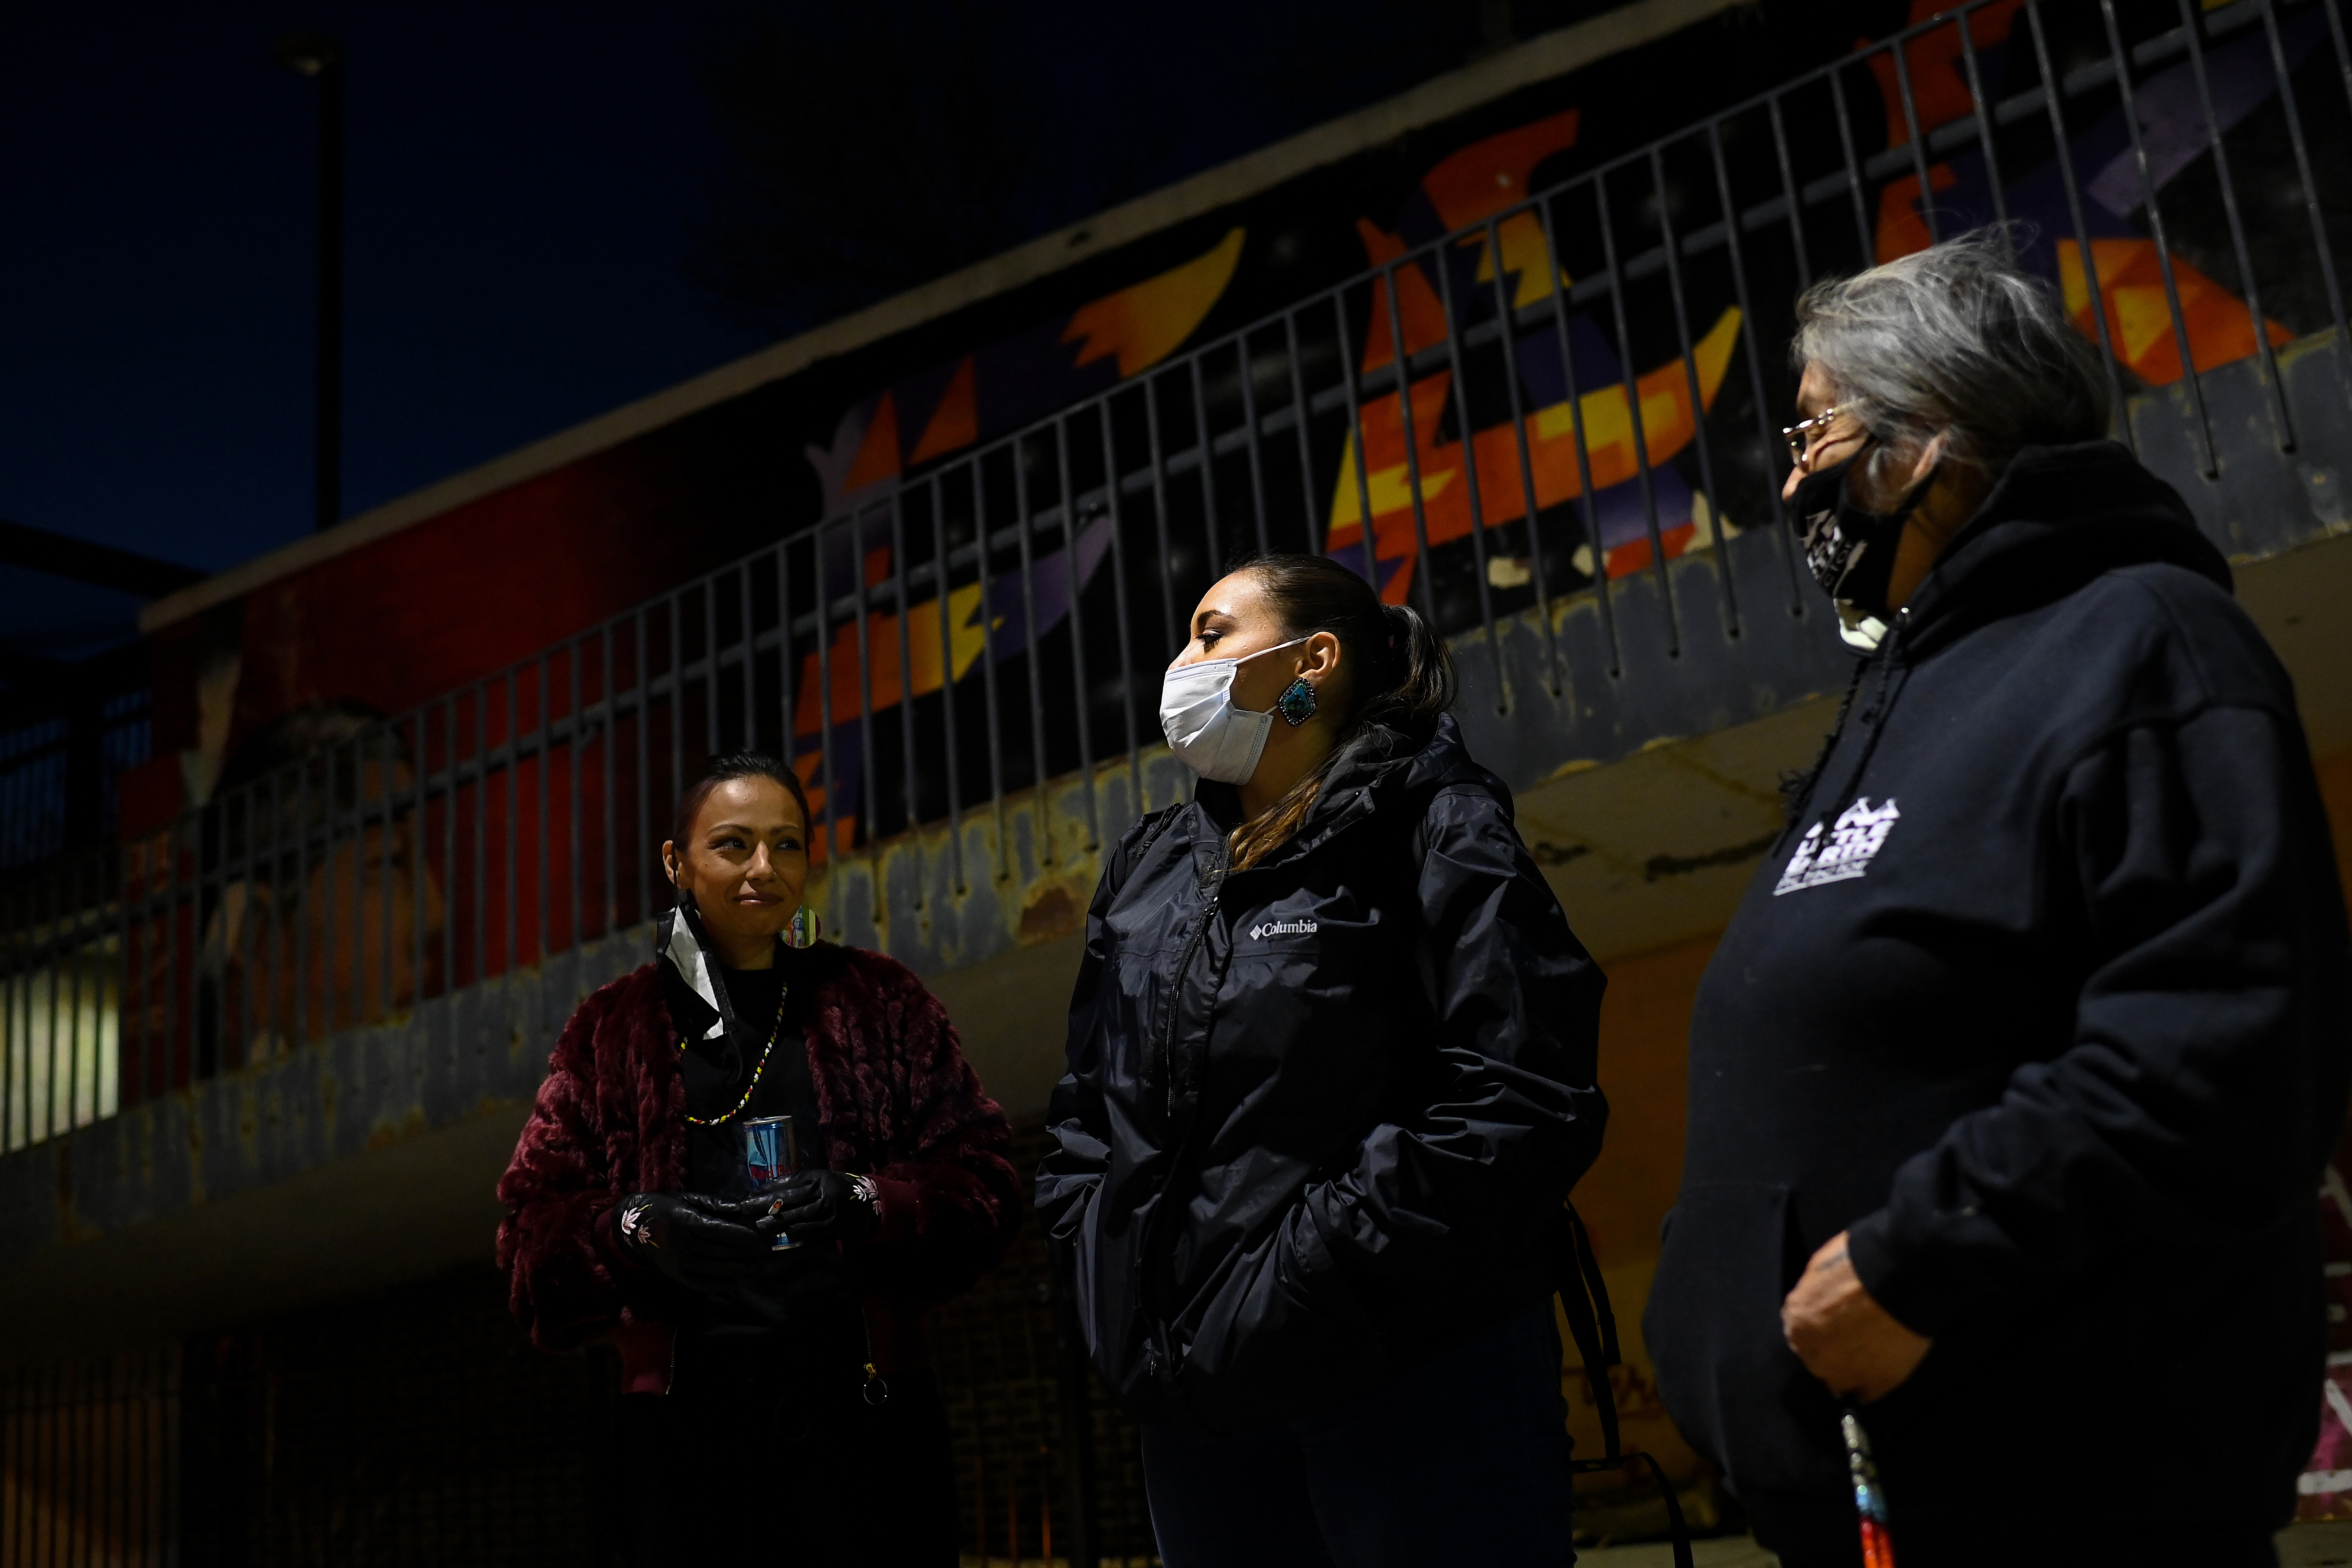 Margarita Ortega, center, talks with other members of the Little Earth Protectors as they patrol. MUST CREDIT: Washington Post photo by Joshua Lott